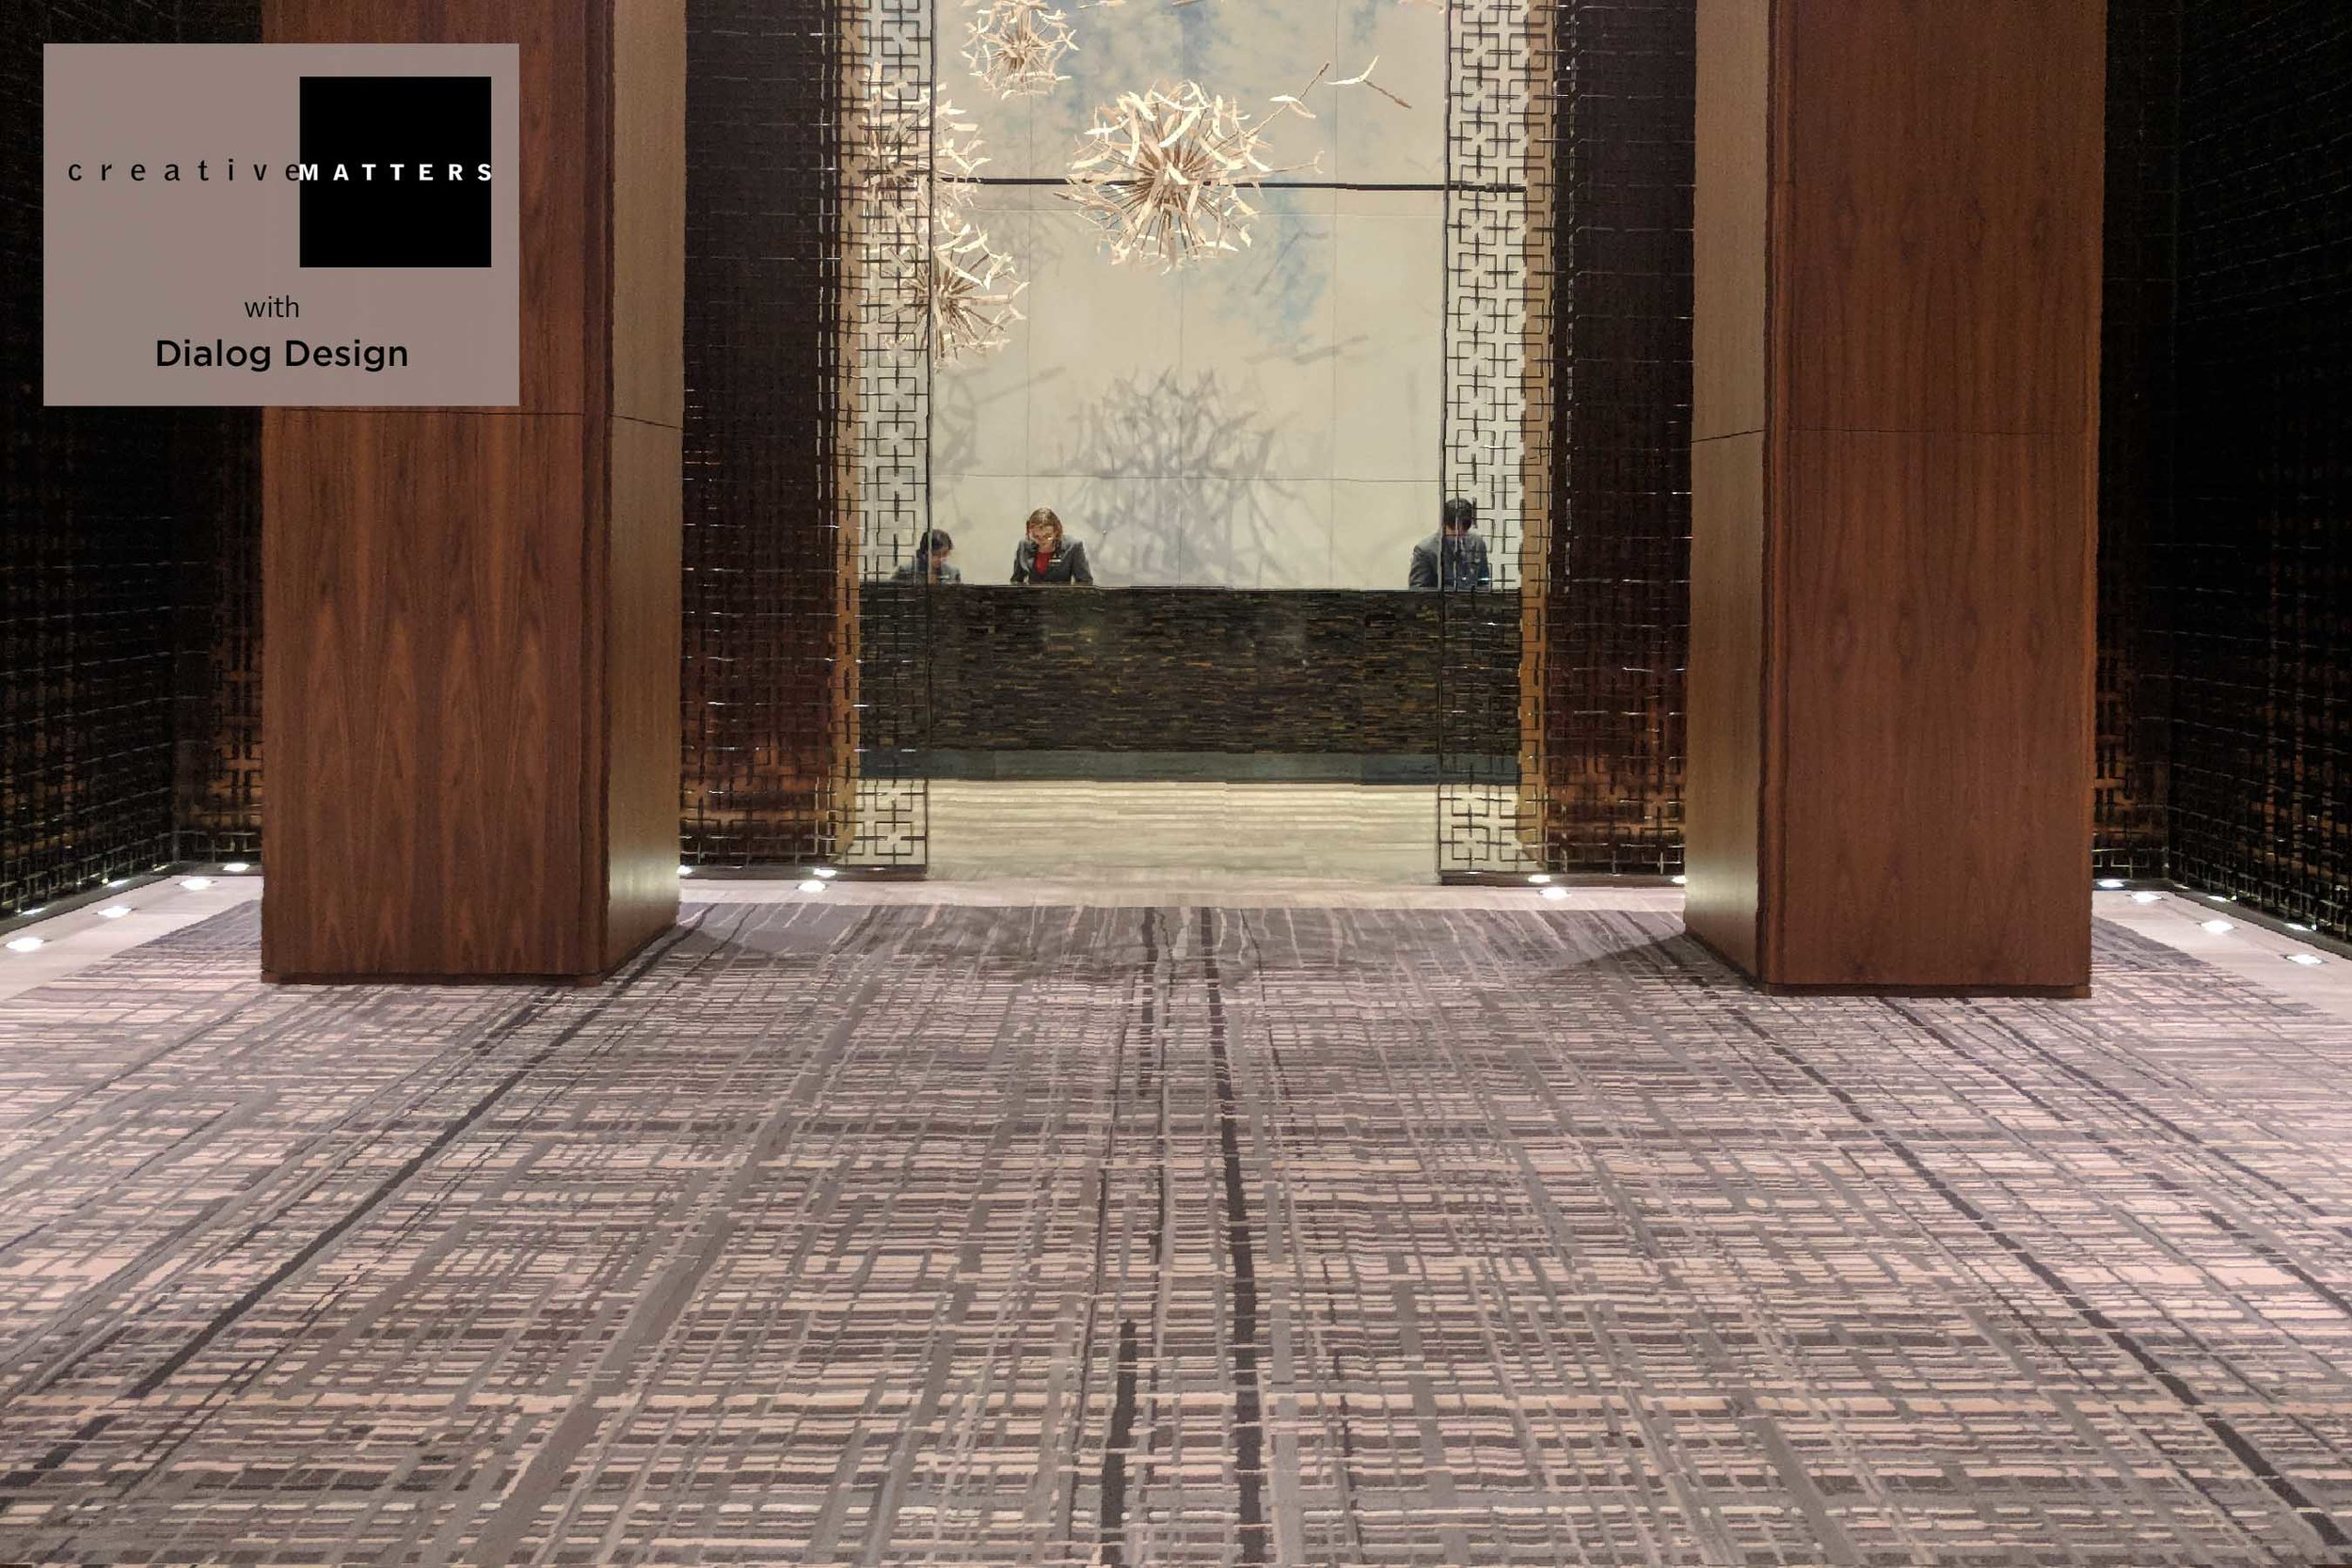 Inevitably the primary role of a hotel lobby rug is to lead the guest's eye to the enticements beyond. For the different sections of the palatial entrance at Toronto's Four Seasons, we created six variations on a theme also designed to gratify those who stop and enjoy. Wool and the handtufted method call out to gracefully bear a thousand comings and goings. For this piece however, a delightful crosshatch woven look was achieved using multiple textures - varying pile heights along with loop and cut pile - for added depth and intrigue.  Project: lobby rug for the Four Seasons Hotel, Toronto Rug: wool and silk, handtufted in Thailand Interior Designer: Dialog Design Creative Matters Designer: Kat Pezzano